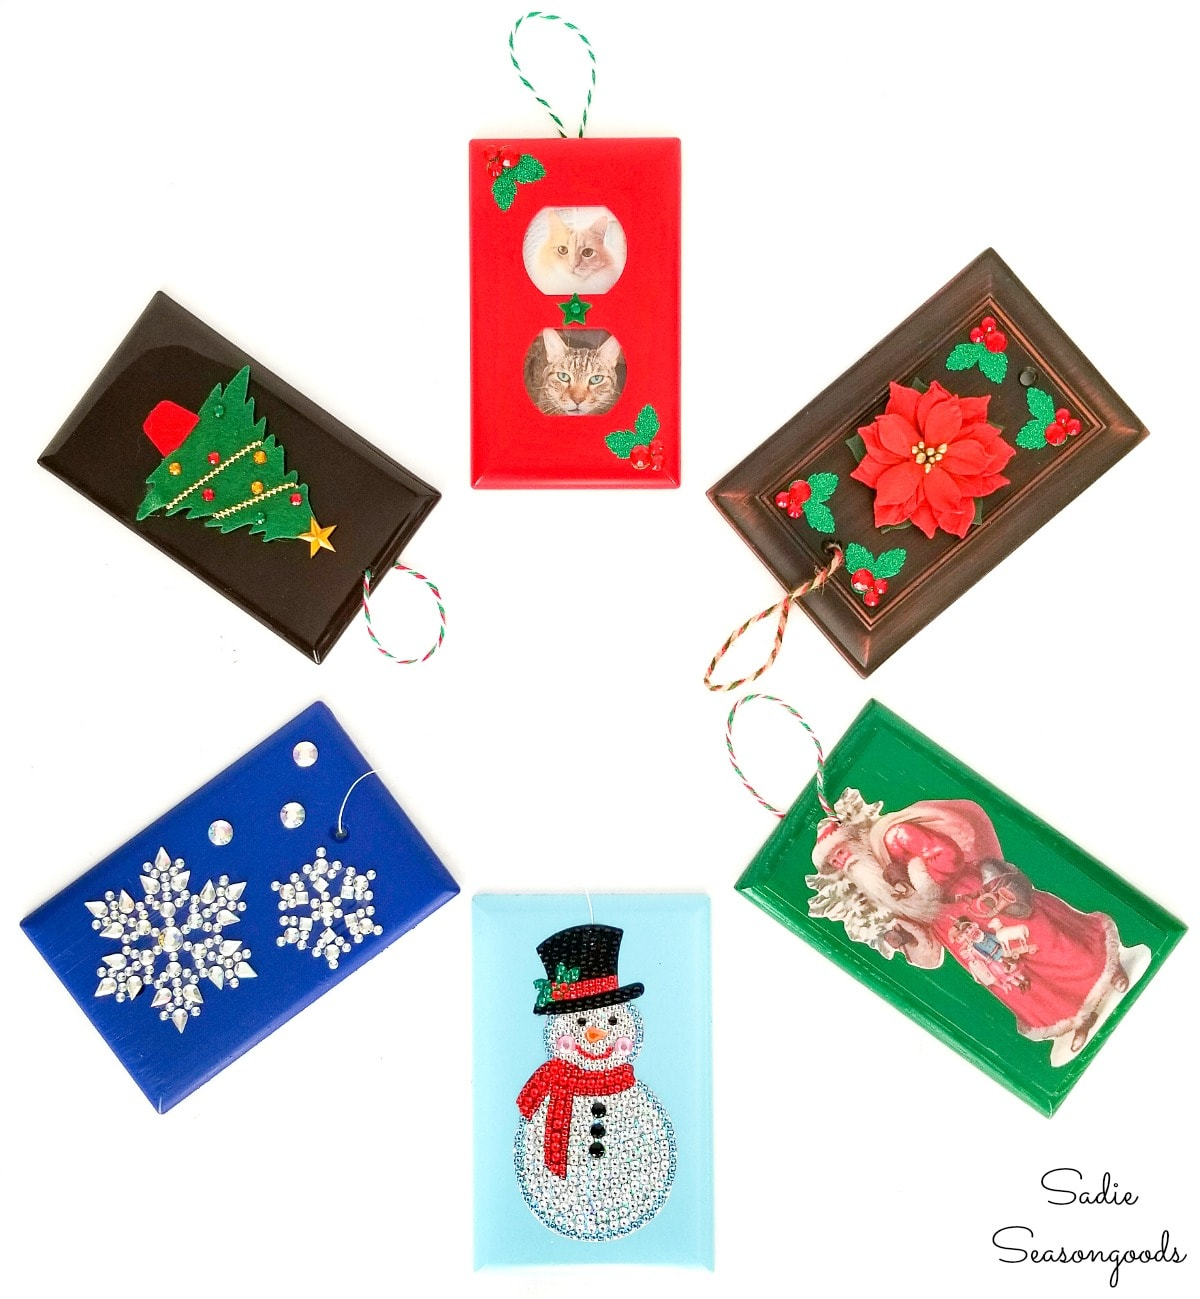 Christmas ornament crafts for kids with switchplate covers